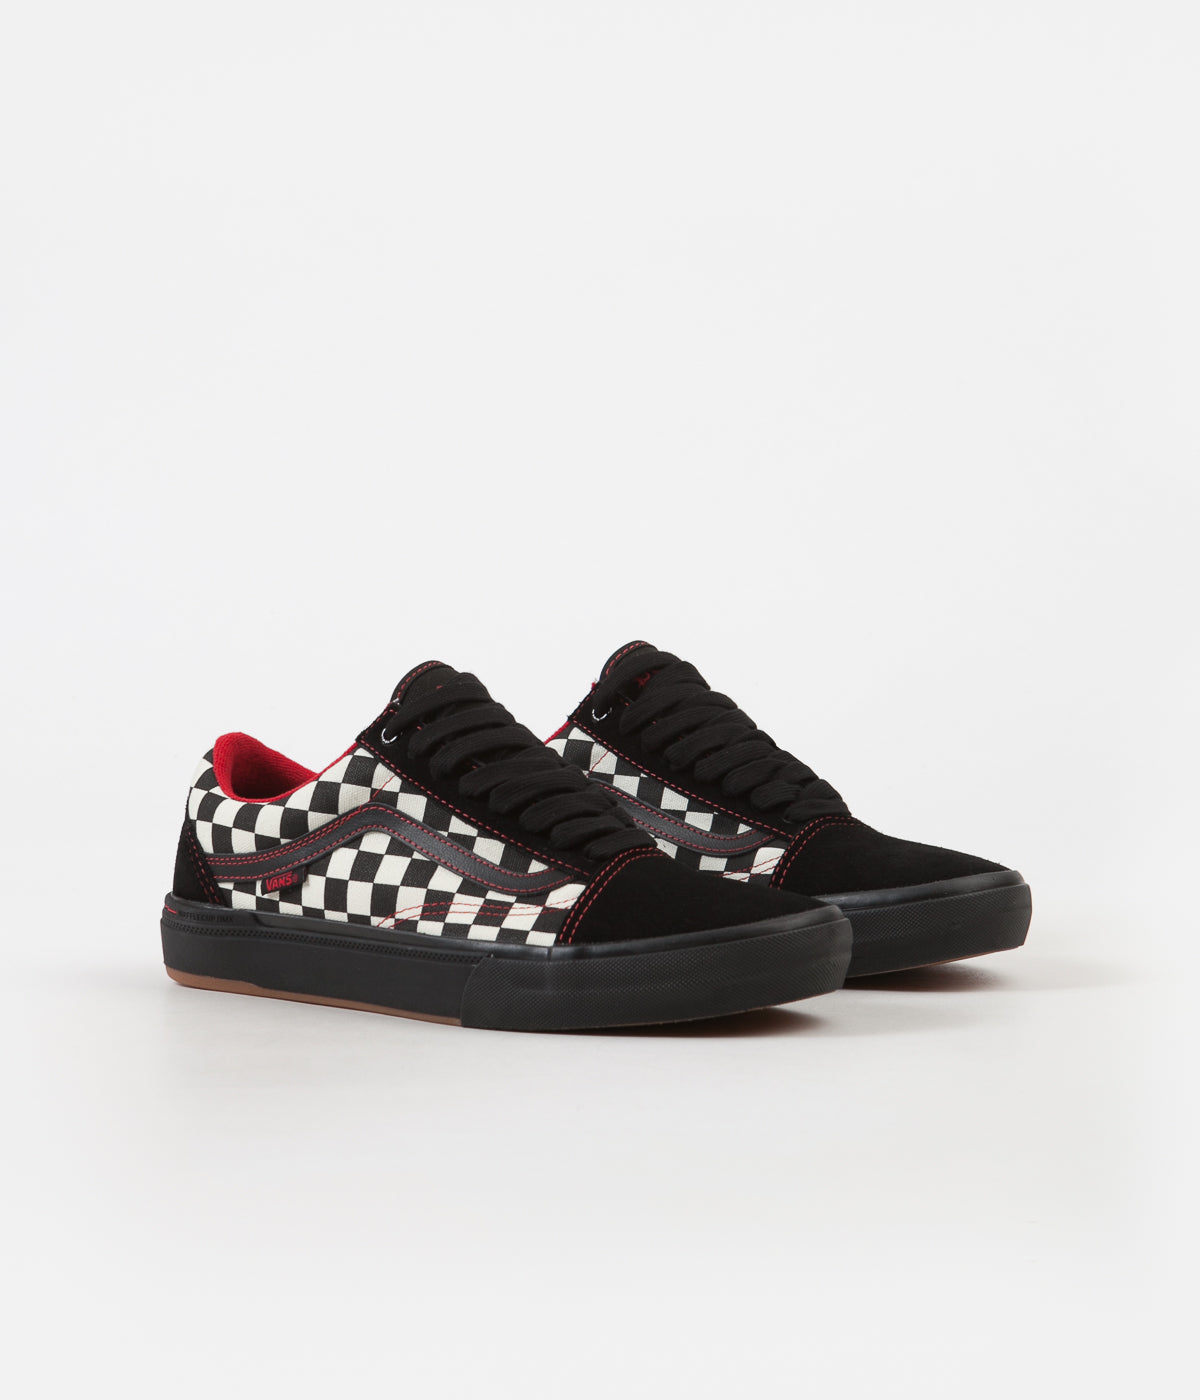 41b213b2393 Vans Old Skool Pro BMX Shoes - (Kevin Peraza) Black   Checkerboard ...